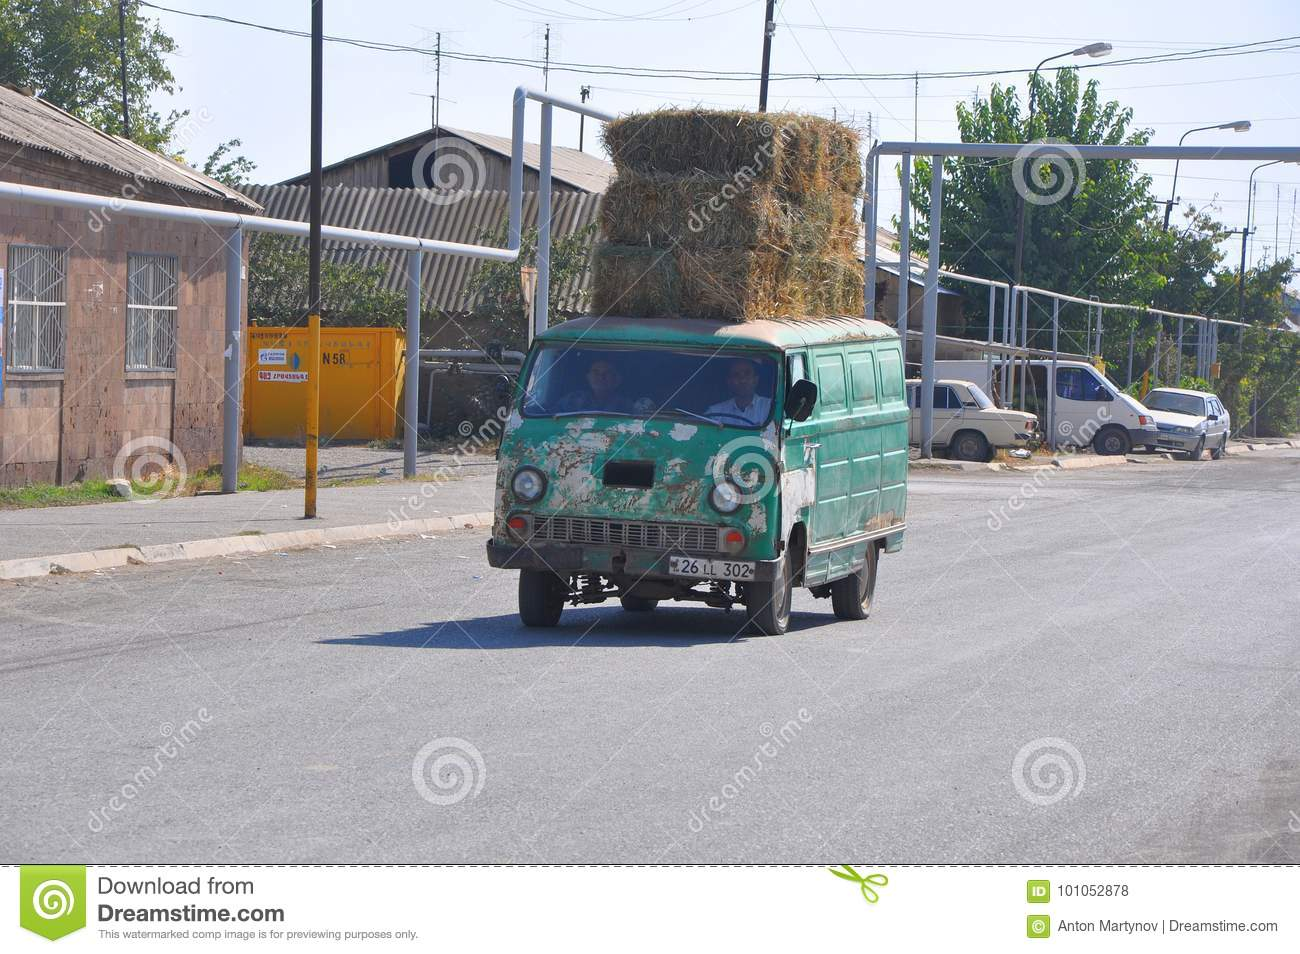 LUSARAT, ARMENIA - OCTOBER 12, 2016: The Old Car Carries Bales Of ...